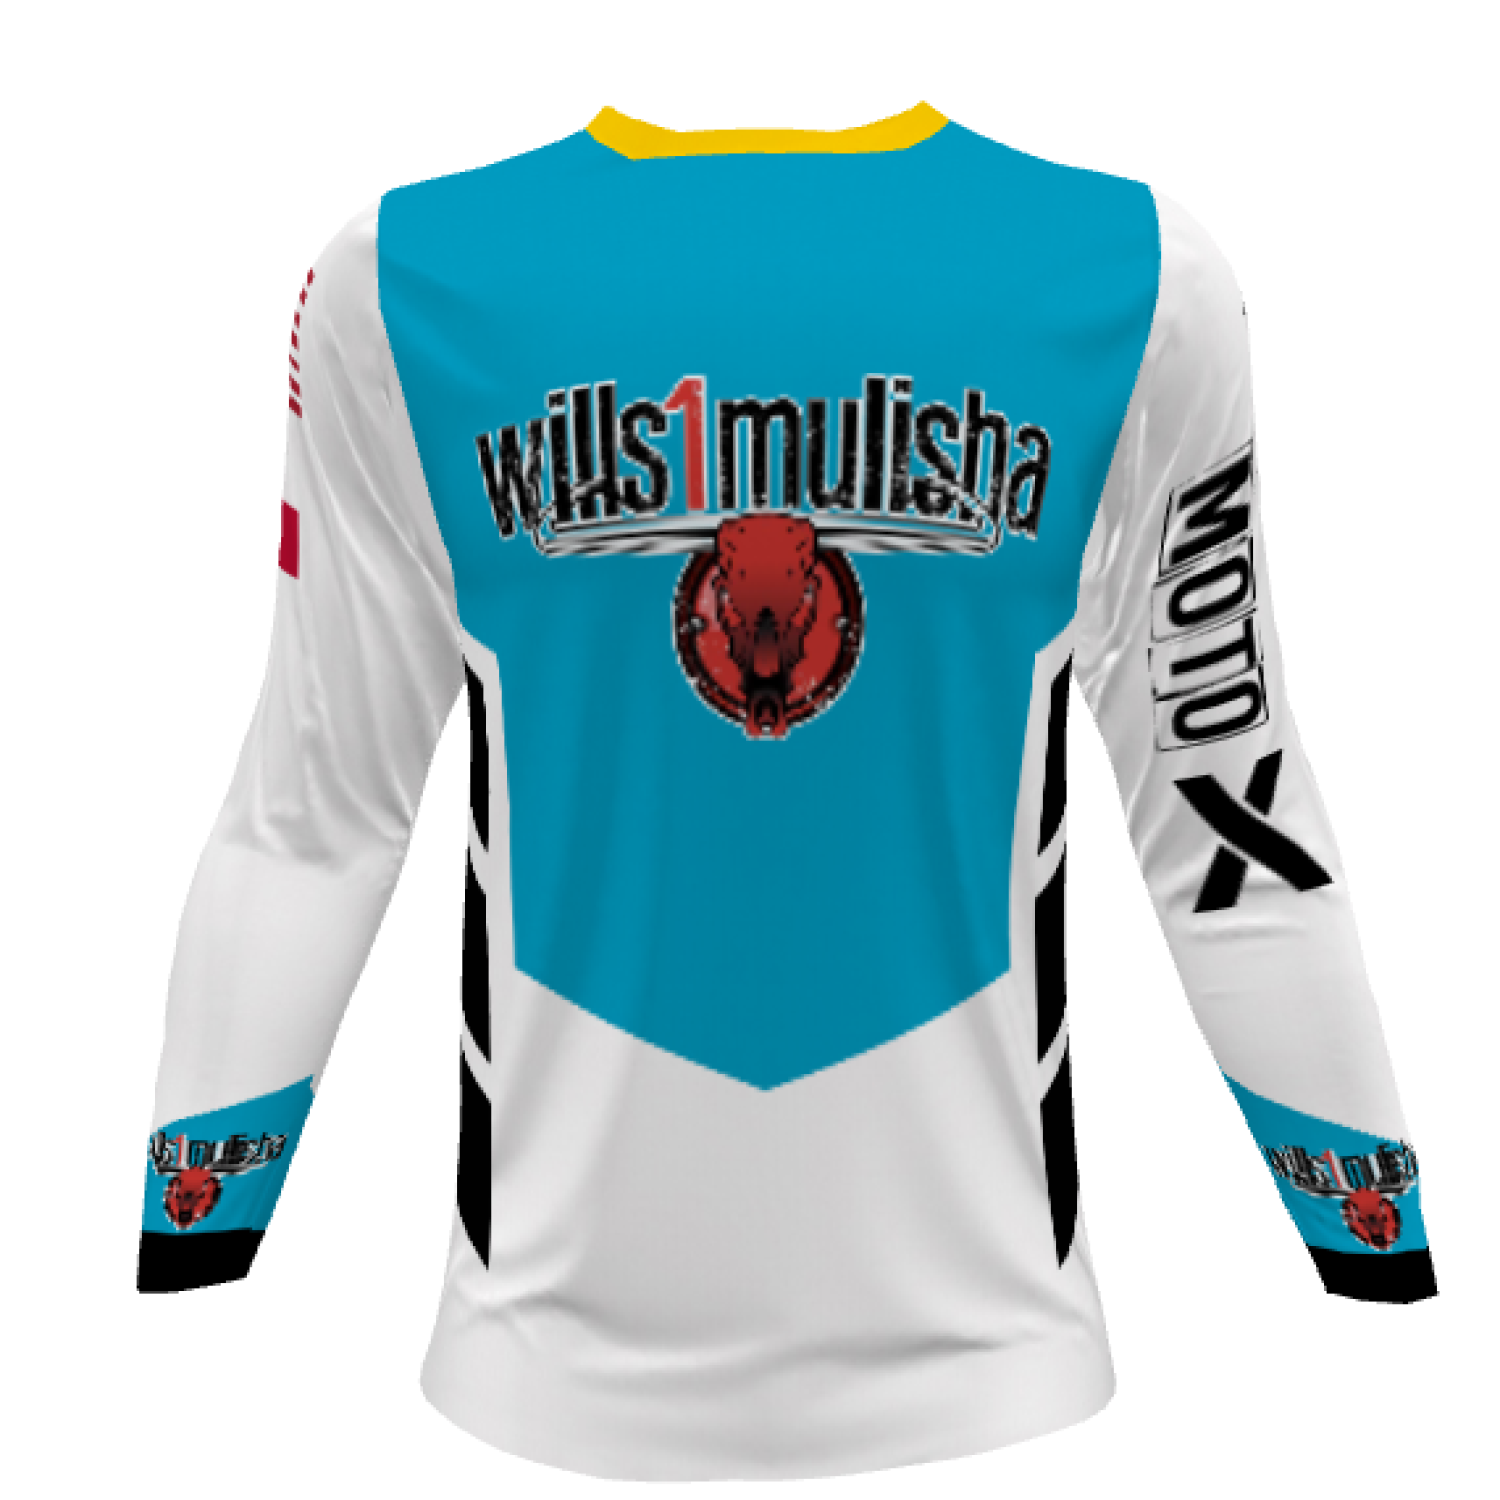 wills1mulisha MotoX Signature, Made In USA, 2020 Motocross Jersey With Name/Number, BARON